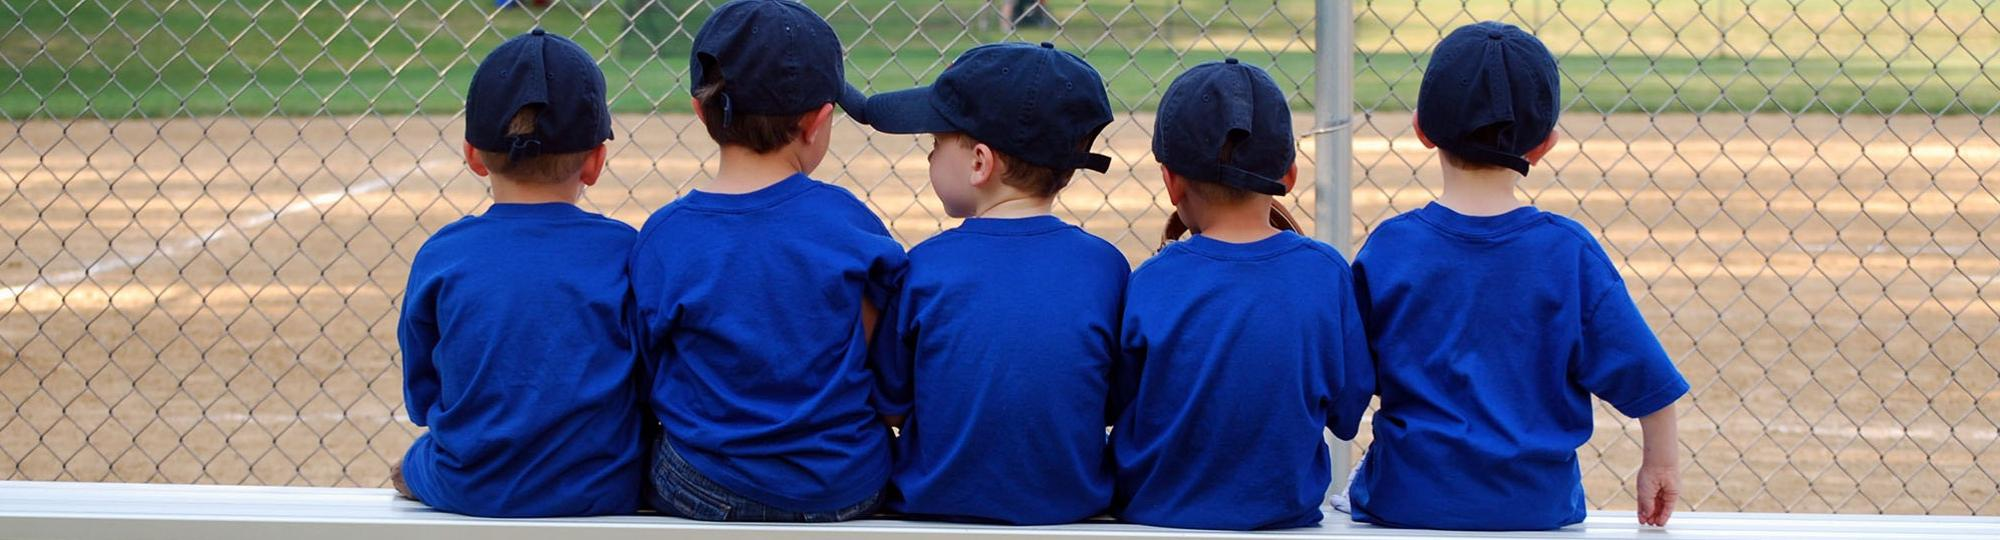 Rear view of a row of kids in blue baseball caps and T-shirts sitting on a bench at a ballfield